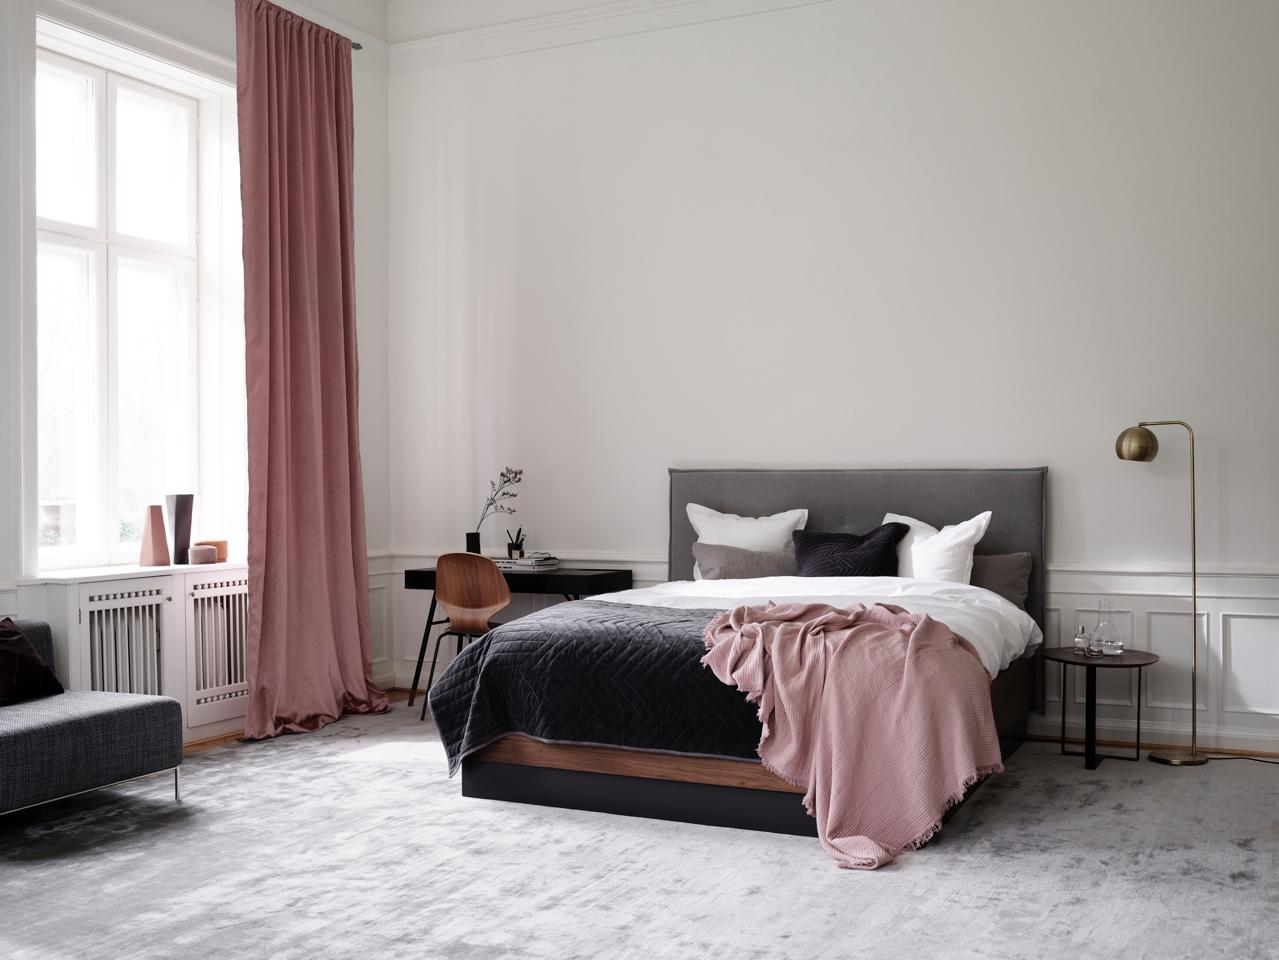 casper-matratzen-test-boconcept-decohome.de-1